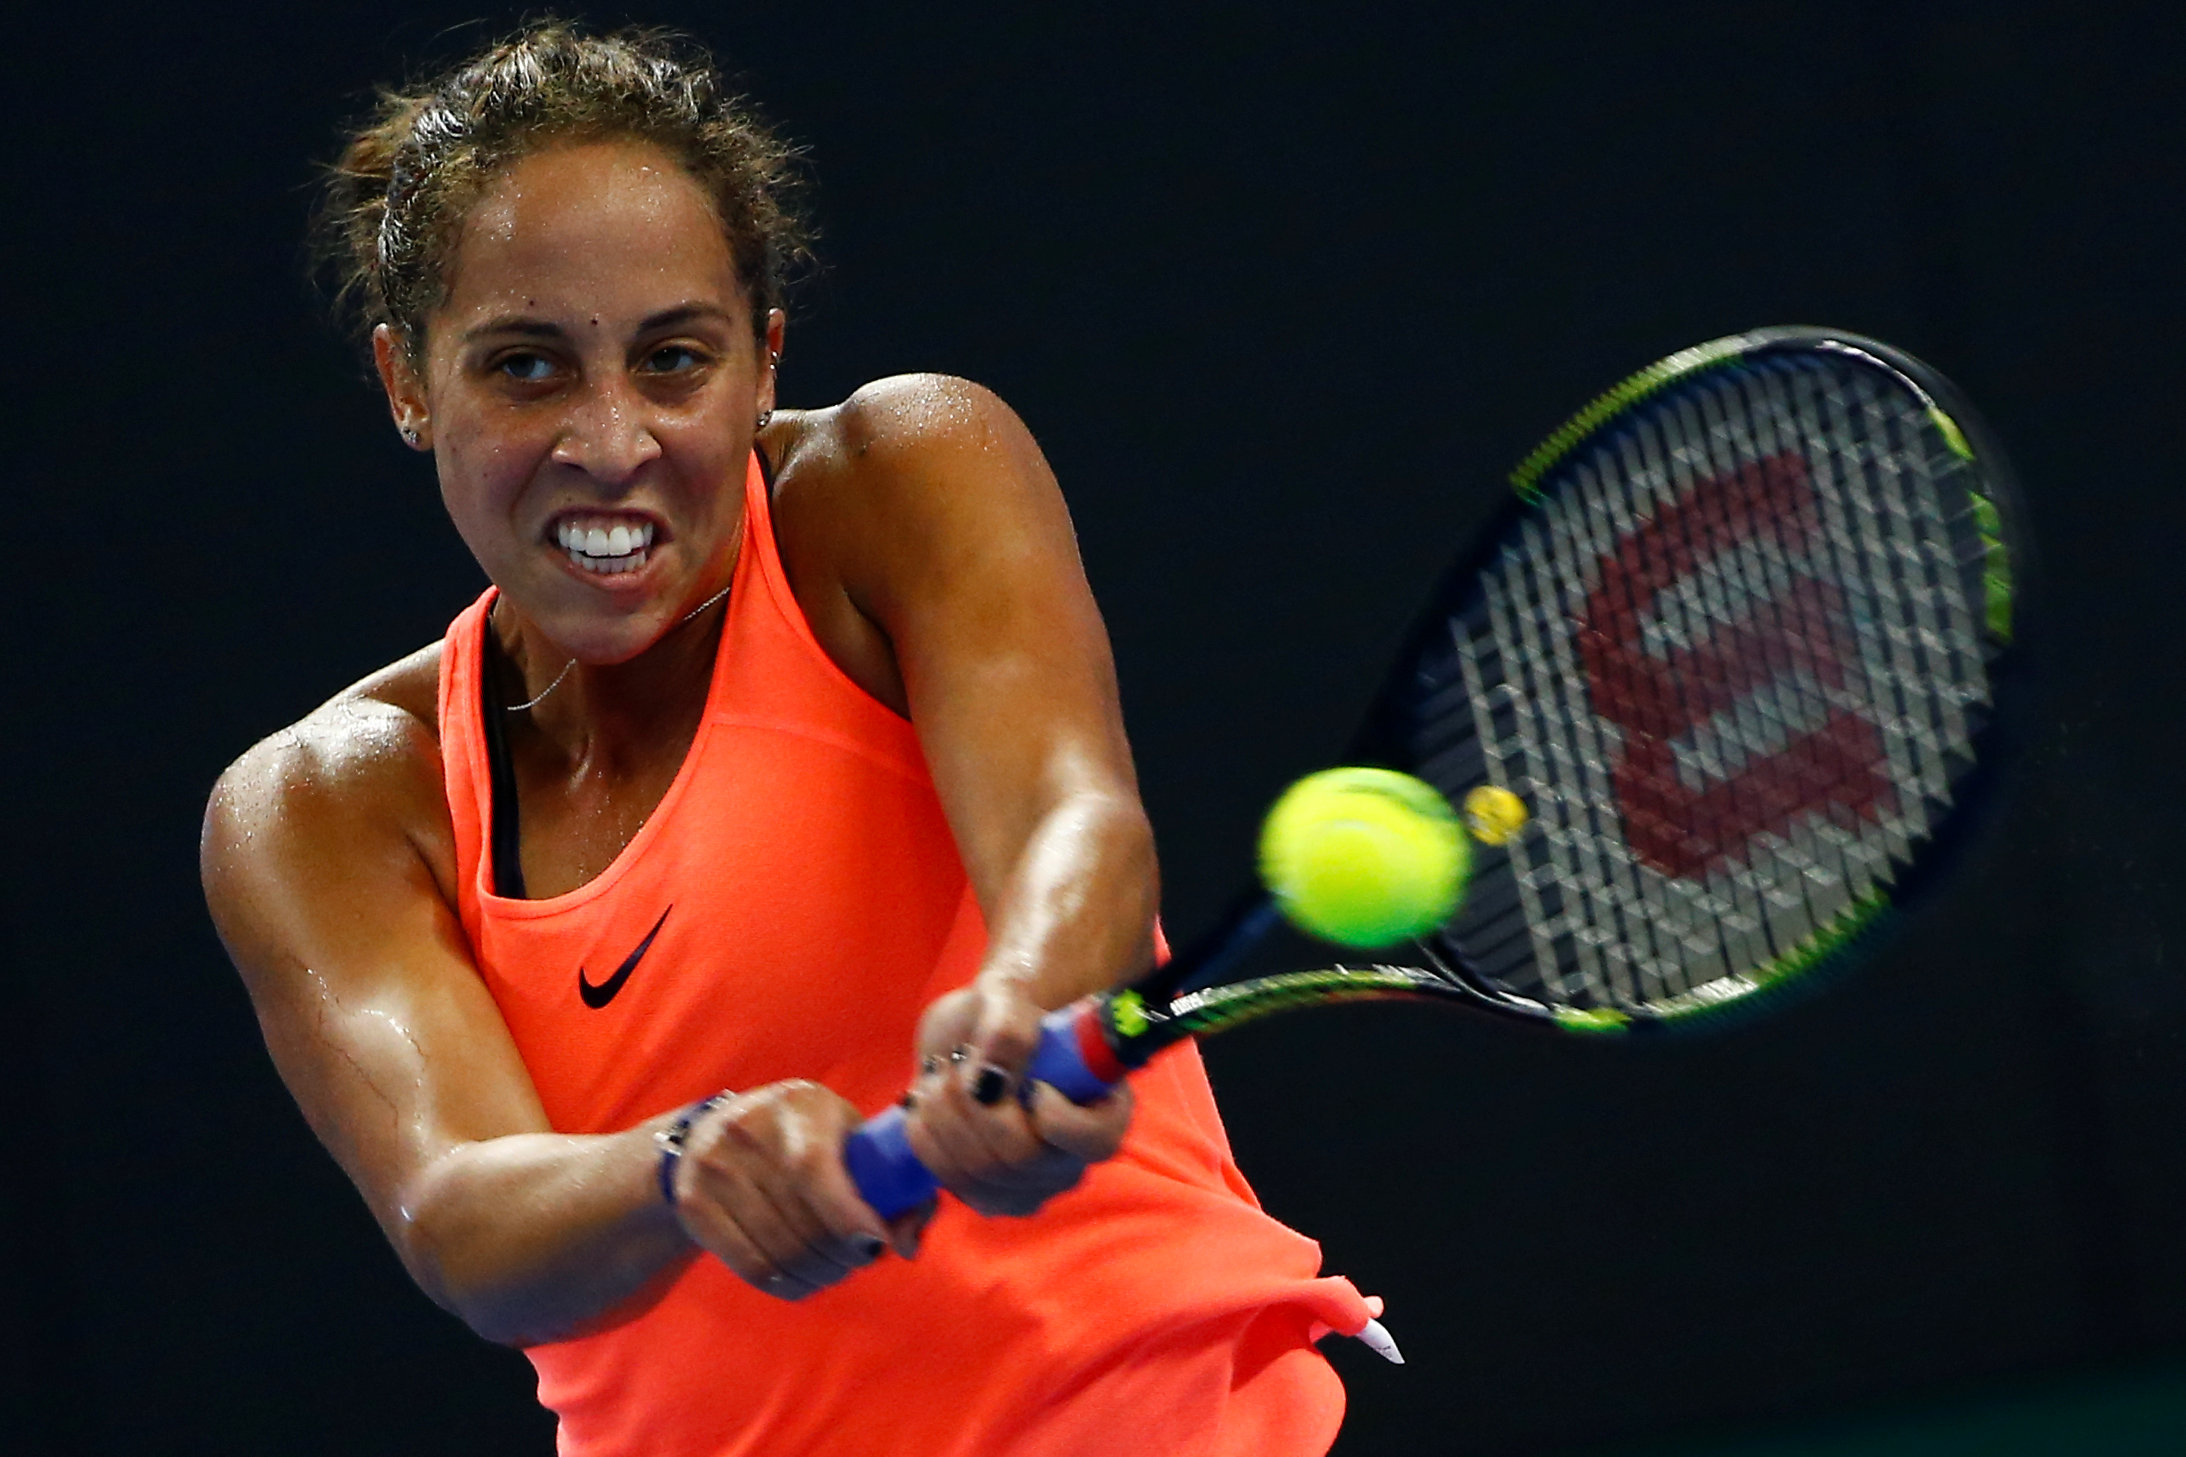 Tennis - «Singe», «cancer du tennis» : Madison Keys enrage contre les insultes racistes